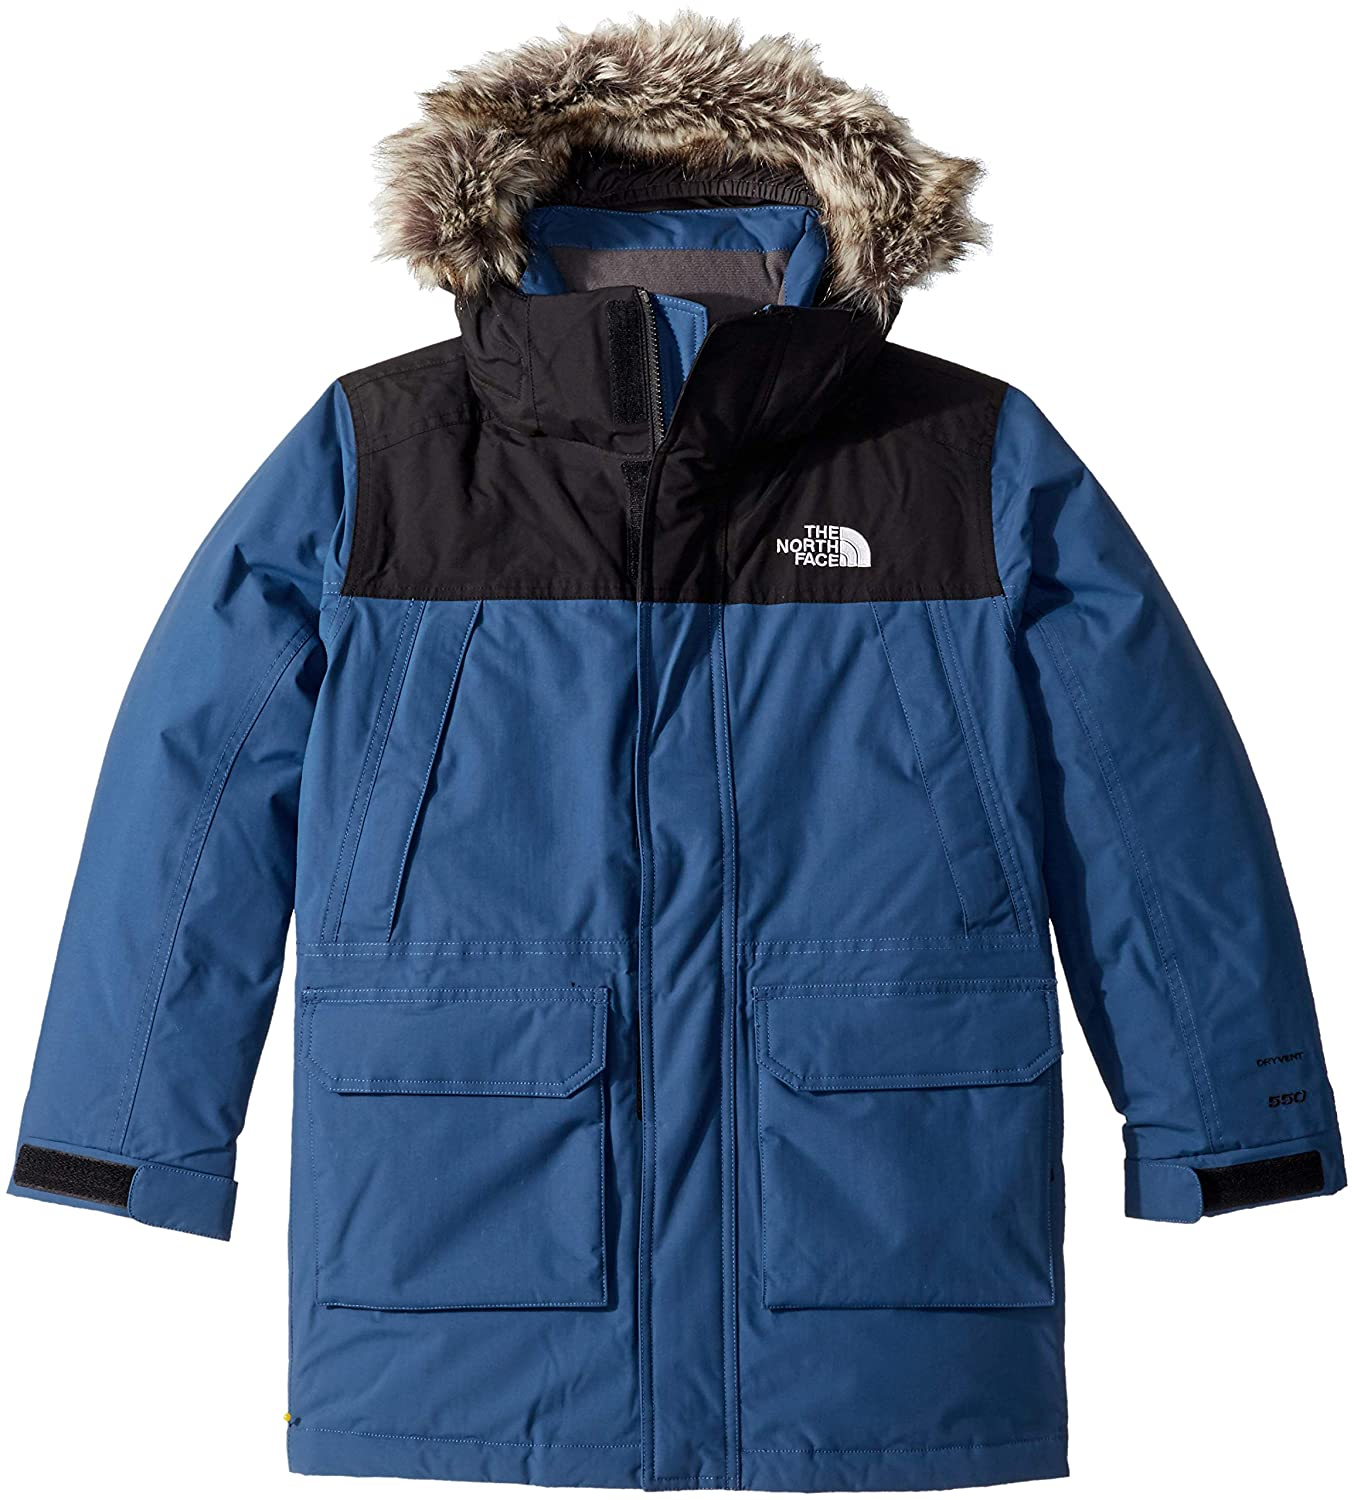 The North Face OUTERWEAR ボーイズ US サイズ: XX-Small カラー: ブルー